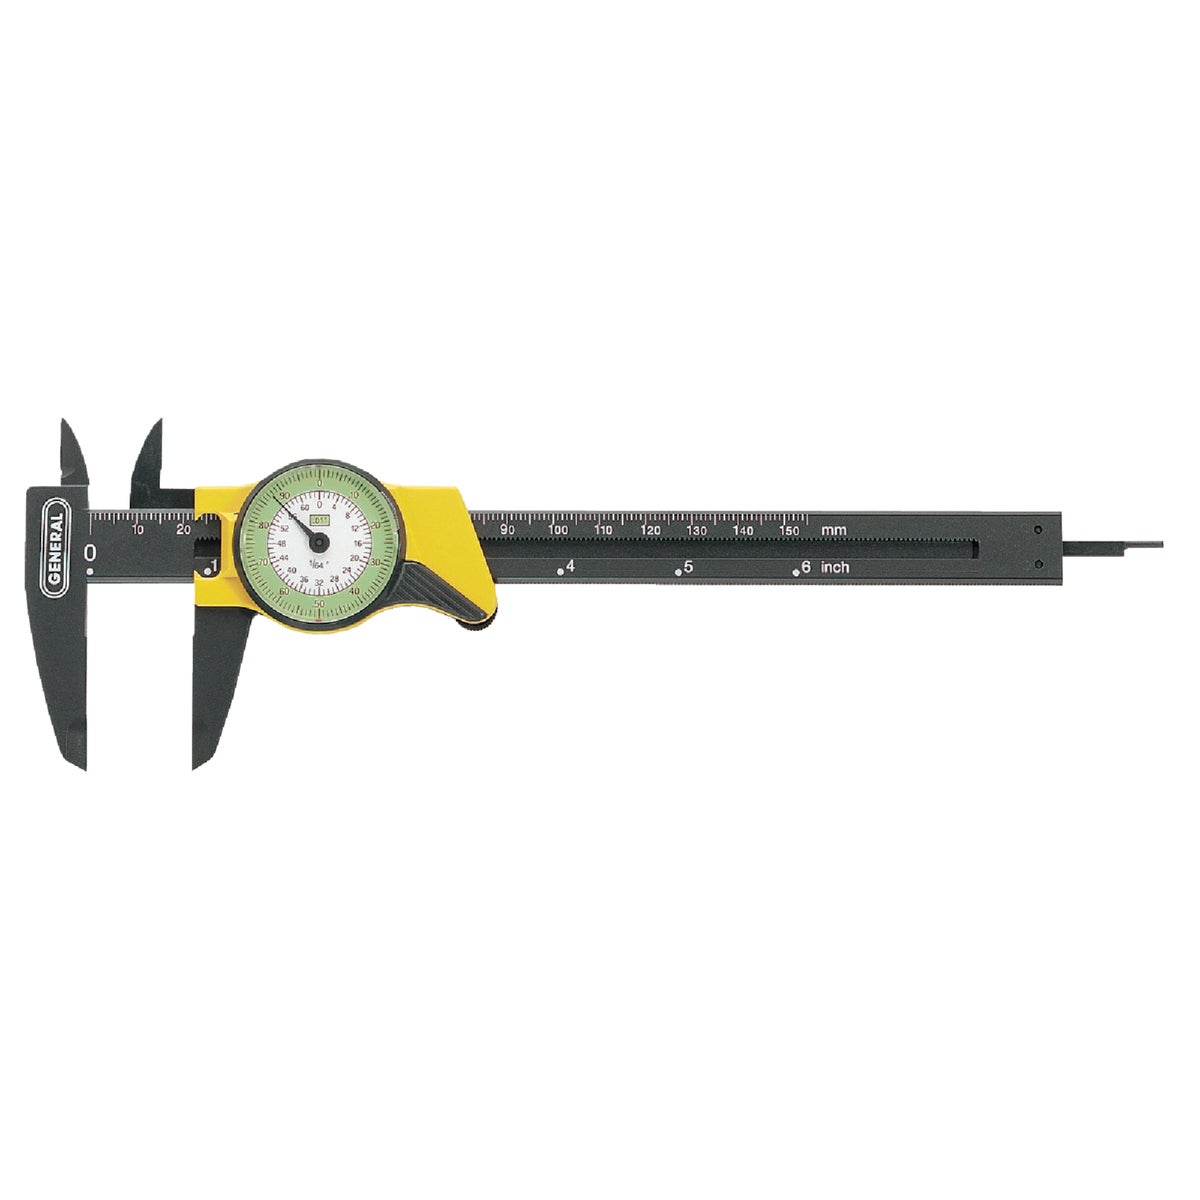 "6"" DIAL CALIPER - 142 by Gen Tools Mfg"